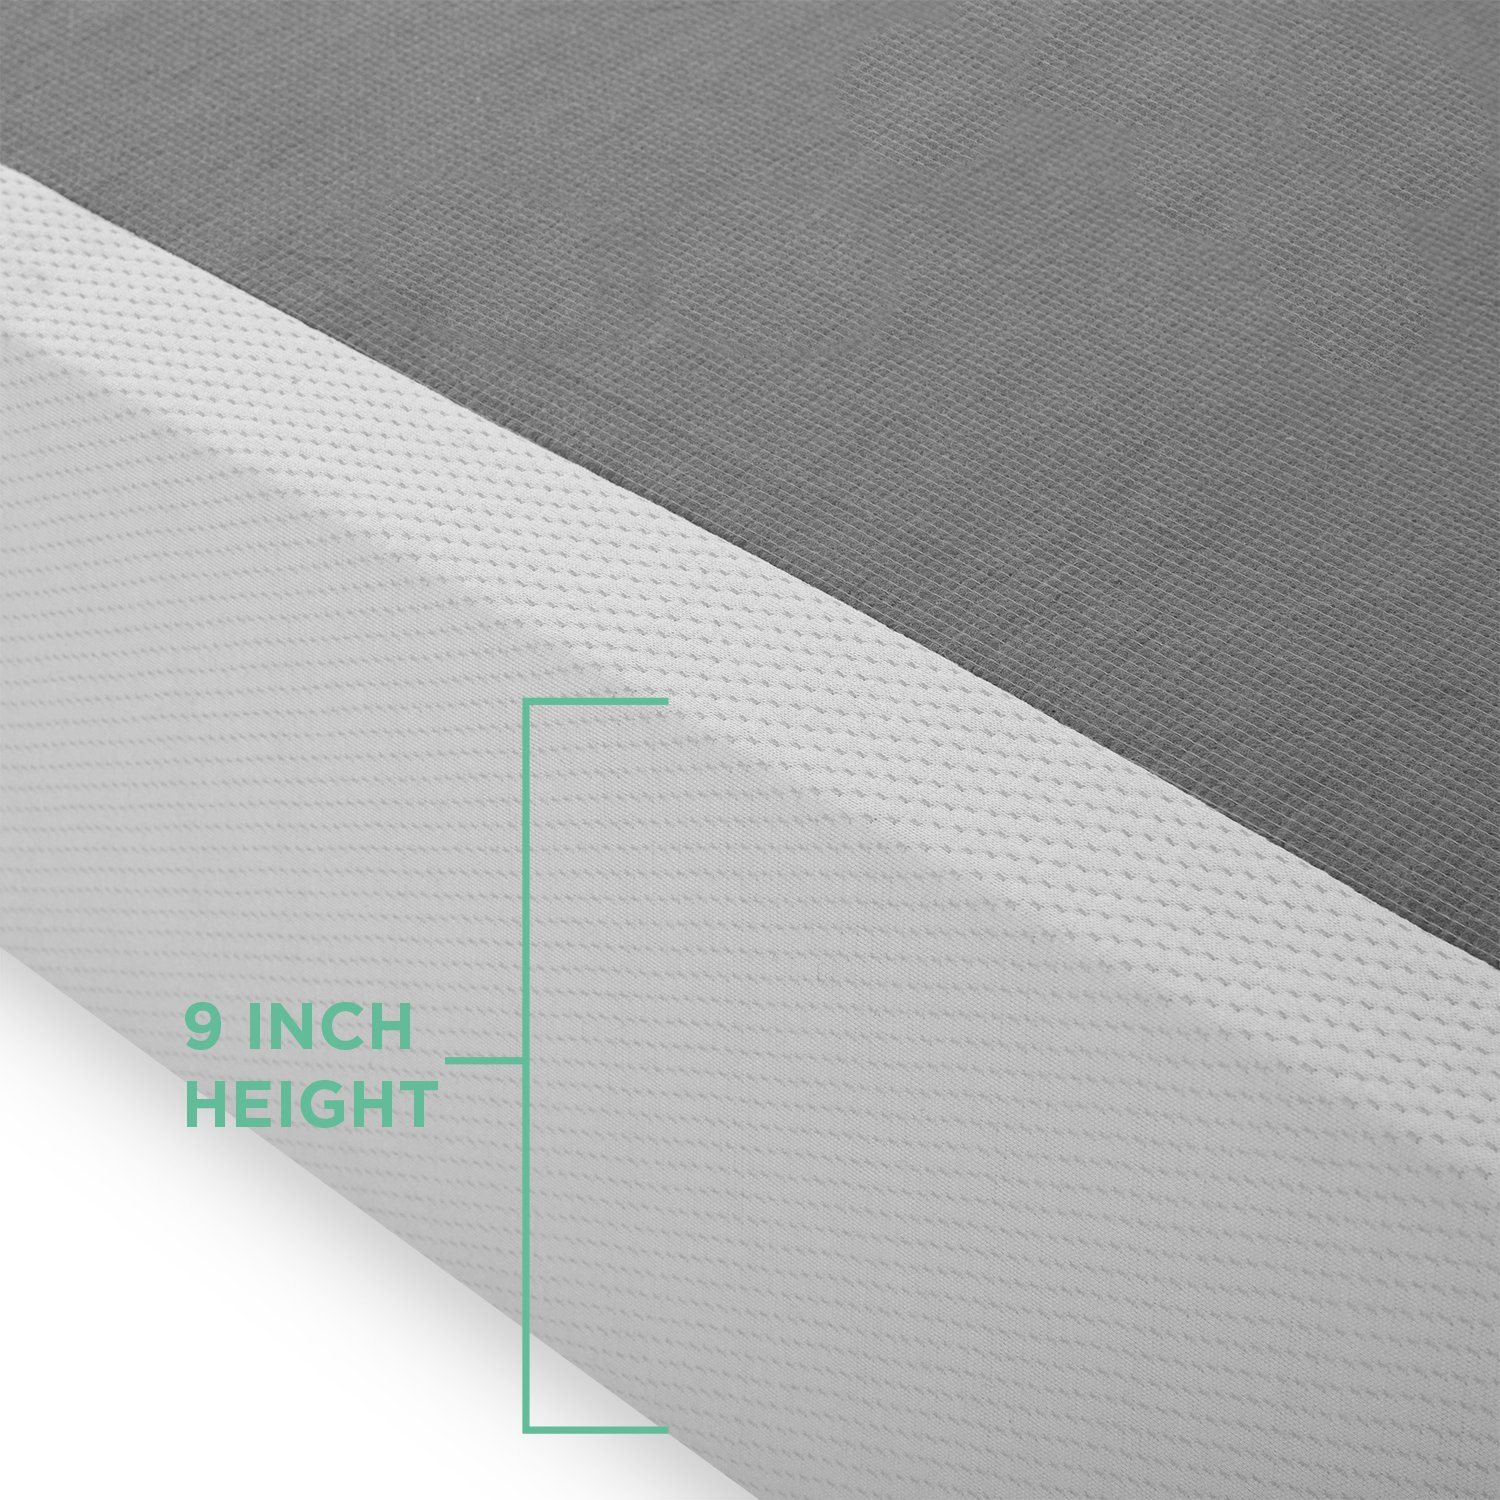 Zinus SM-SC-BIFD-9TXL  9 Inch High Profile BiFold Box Spring Twin XL No assembly required Strong Steel structure Folding Mattress Foundation